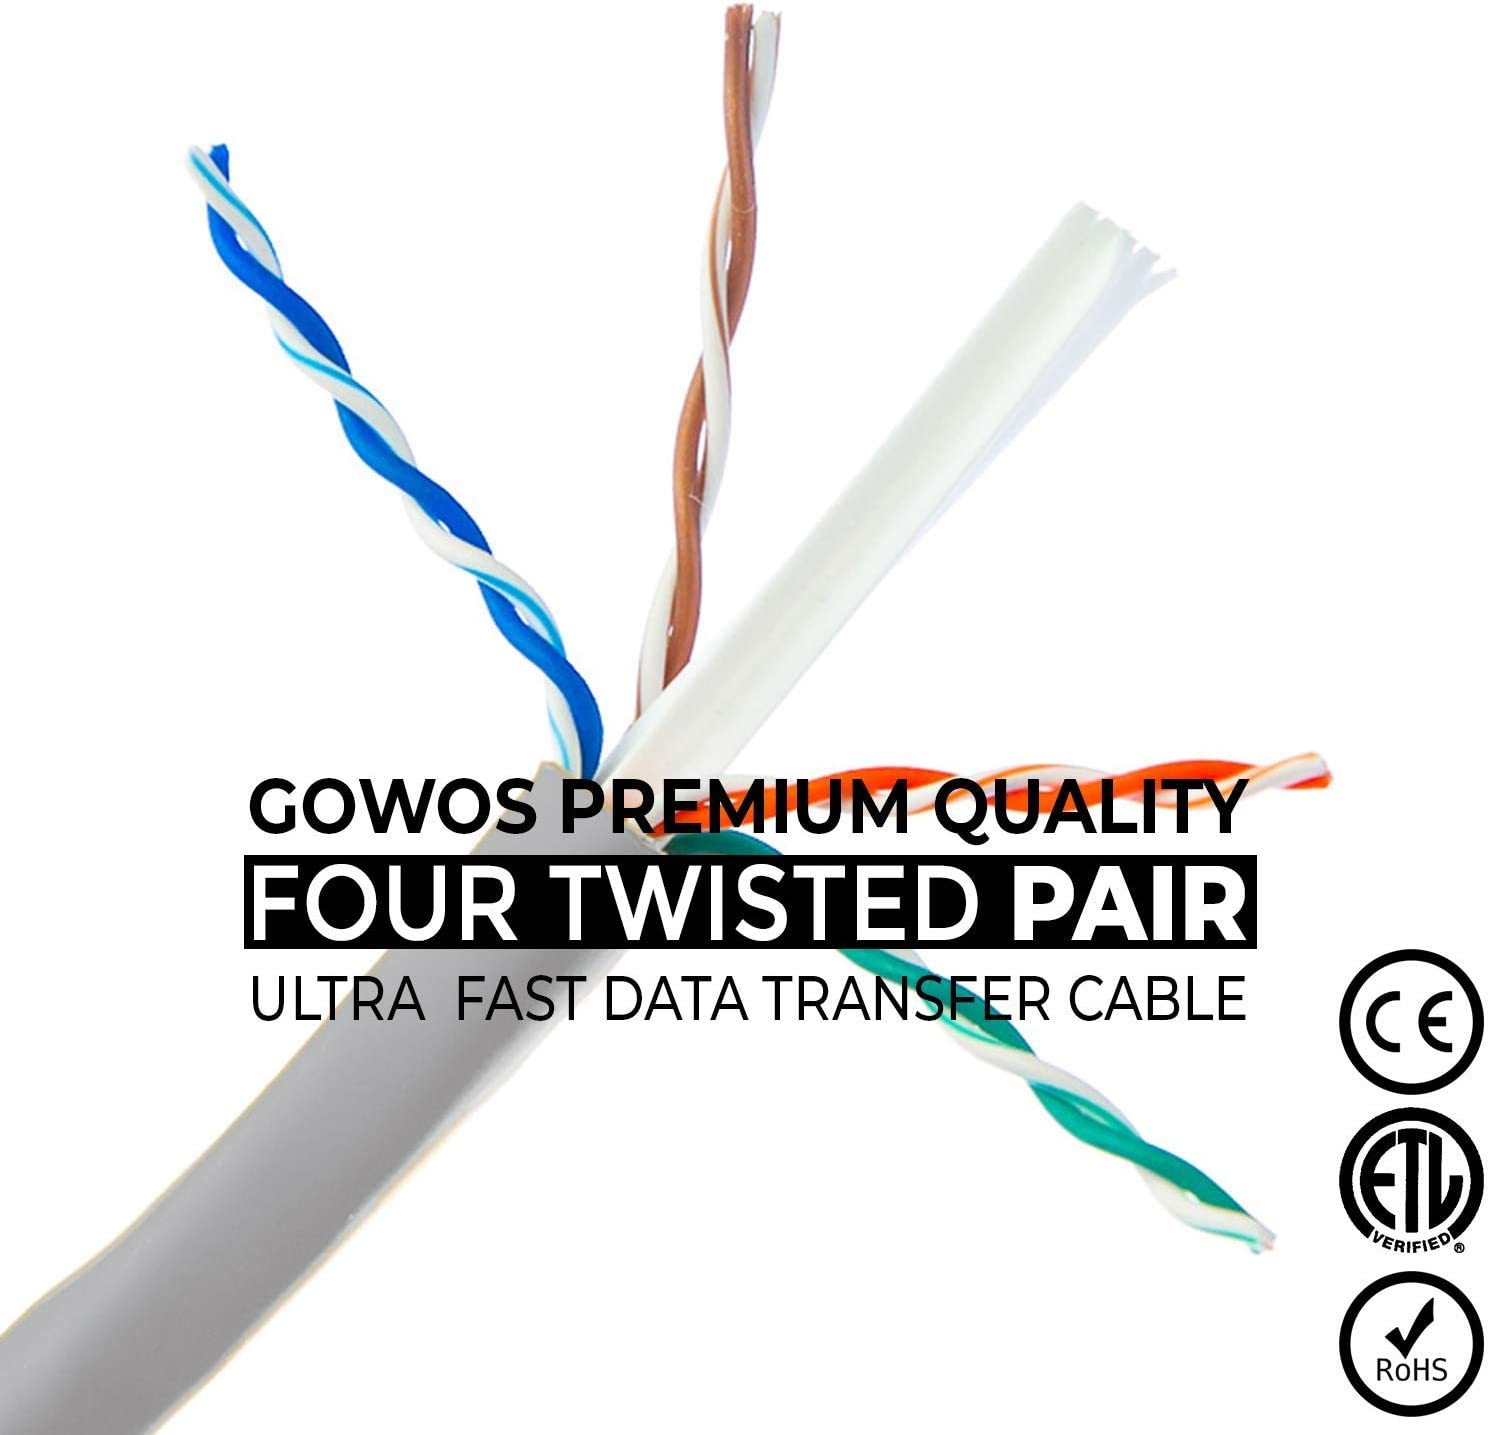 RJ45 10Gbps High Speed LAN Internet Patch Cord Cat5e Ethernet Cable UTP Available in 28 Lengths and 10 Colors Computer Network Cable with Snagless Connector GOWOS 10-Pack 5 Feet - Black